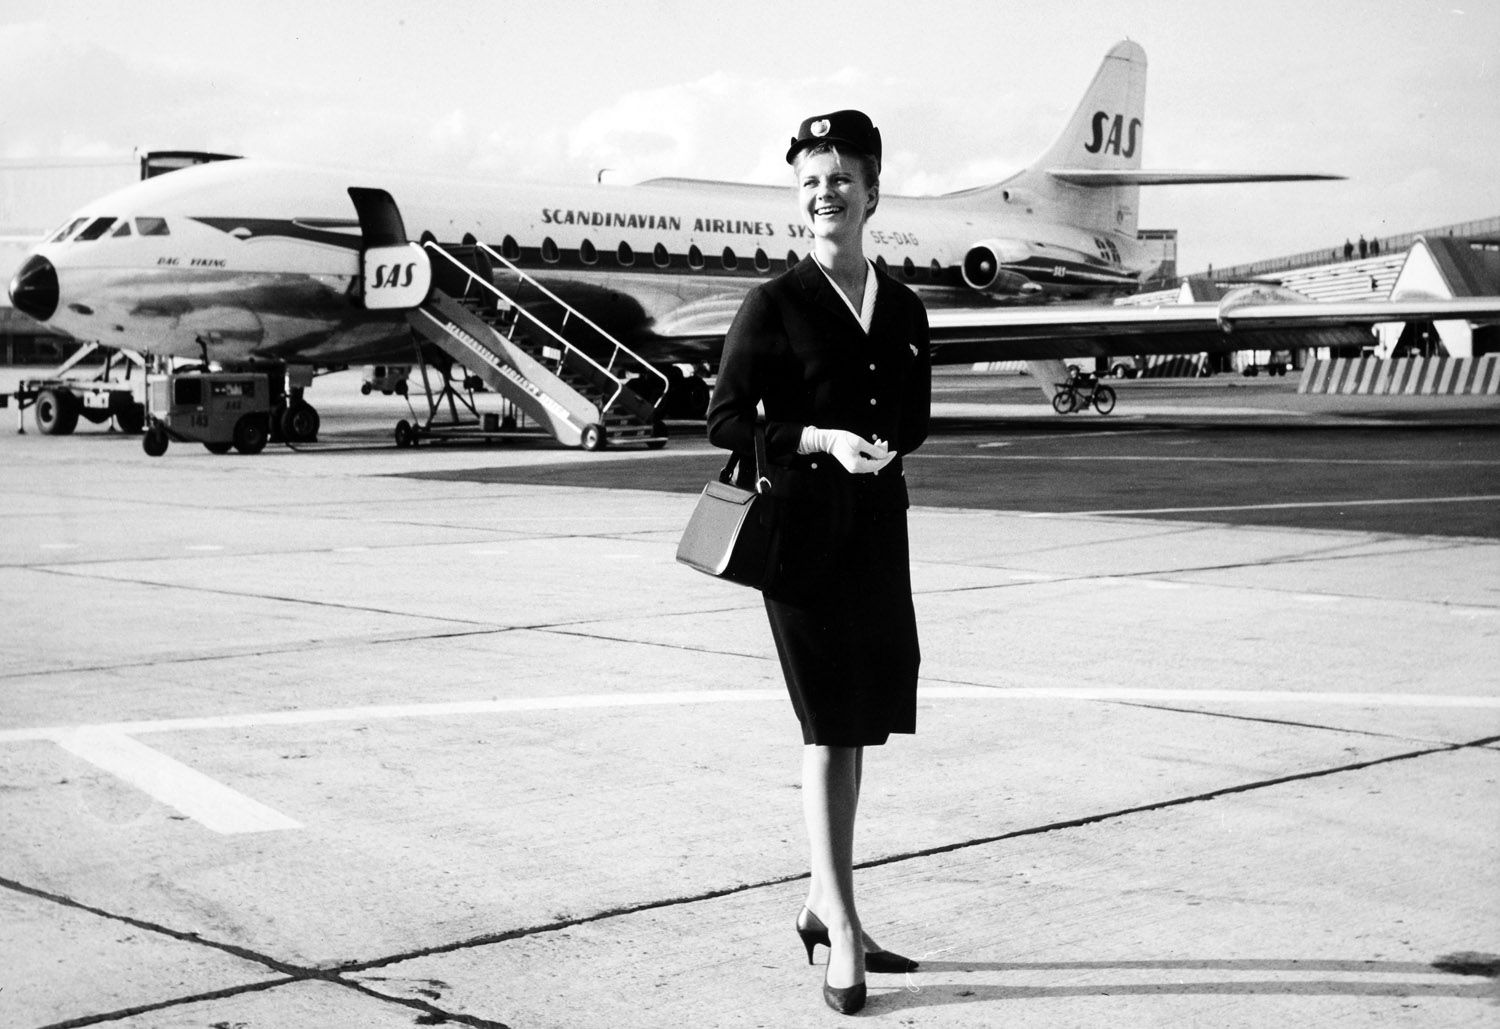 Scandinavian Stewardesses Takes Us Into The Jet Age Jet Age Flight Attendant Uniform Scandinavian Airlines System